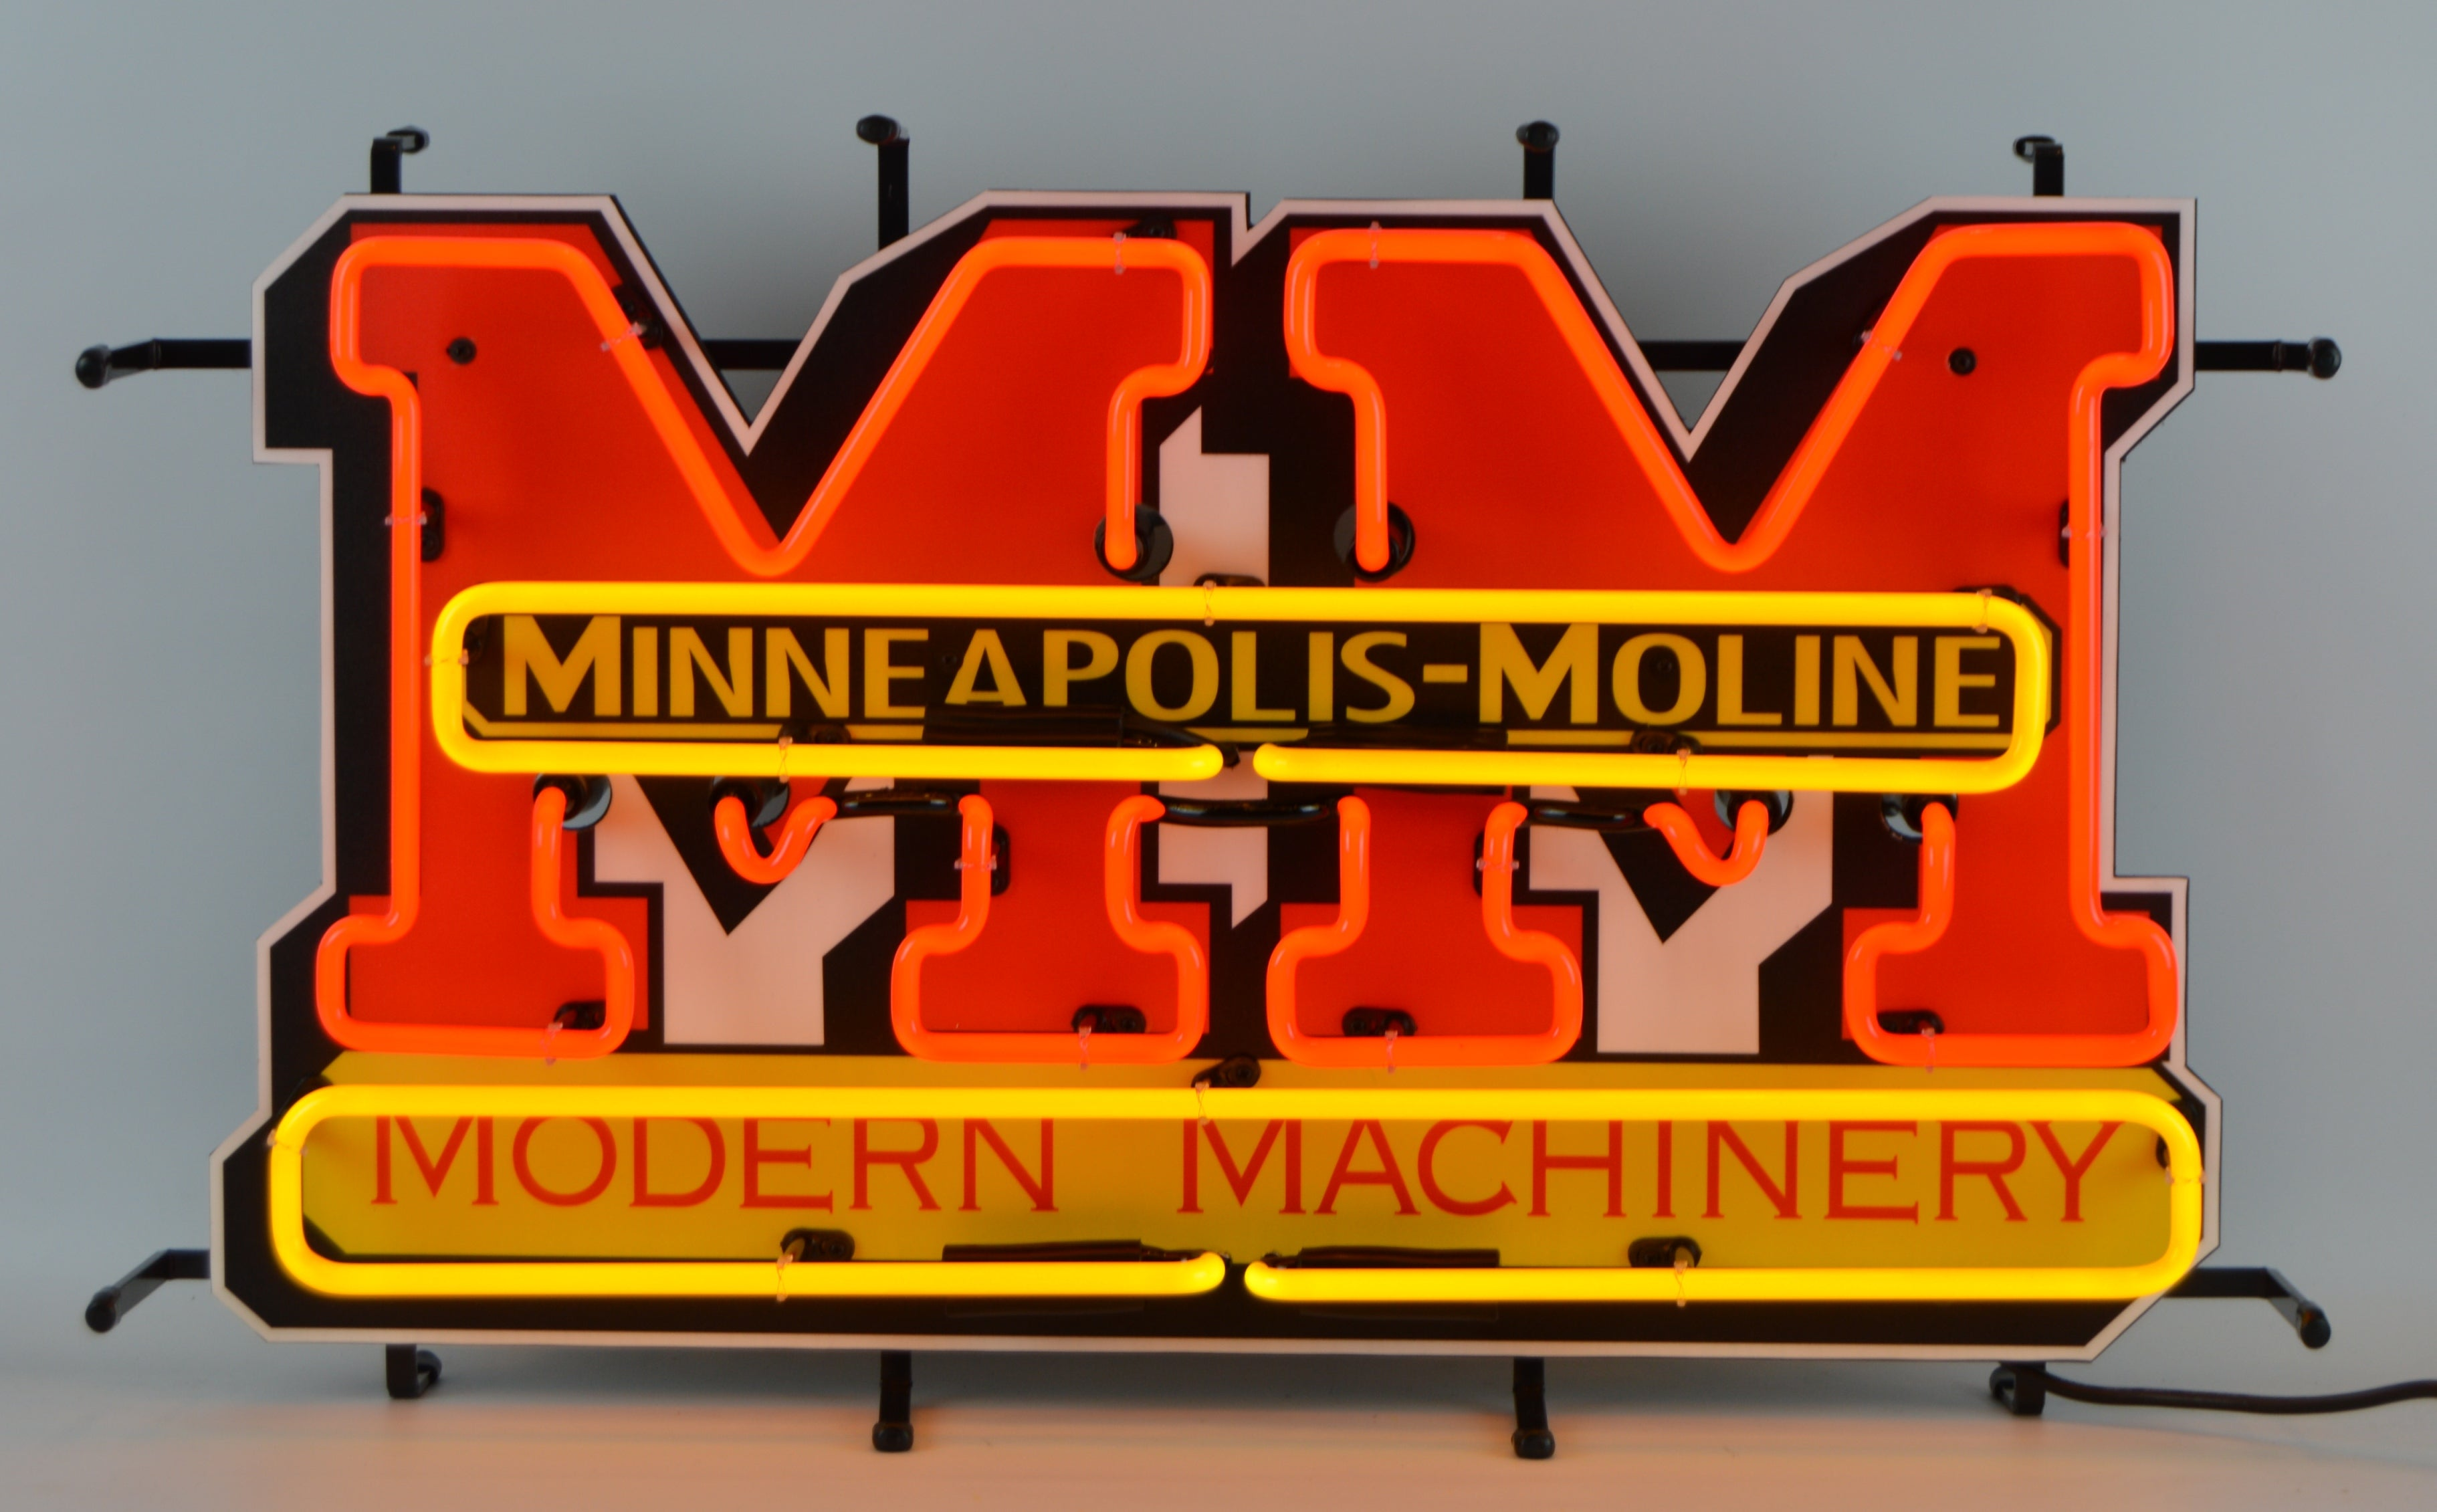 Minneapolis-Moline Modern Machinery Neon Sign